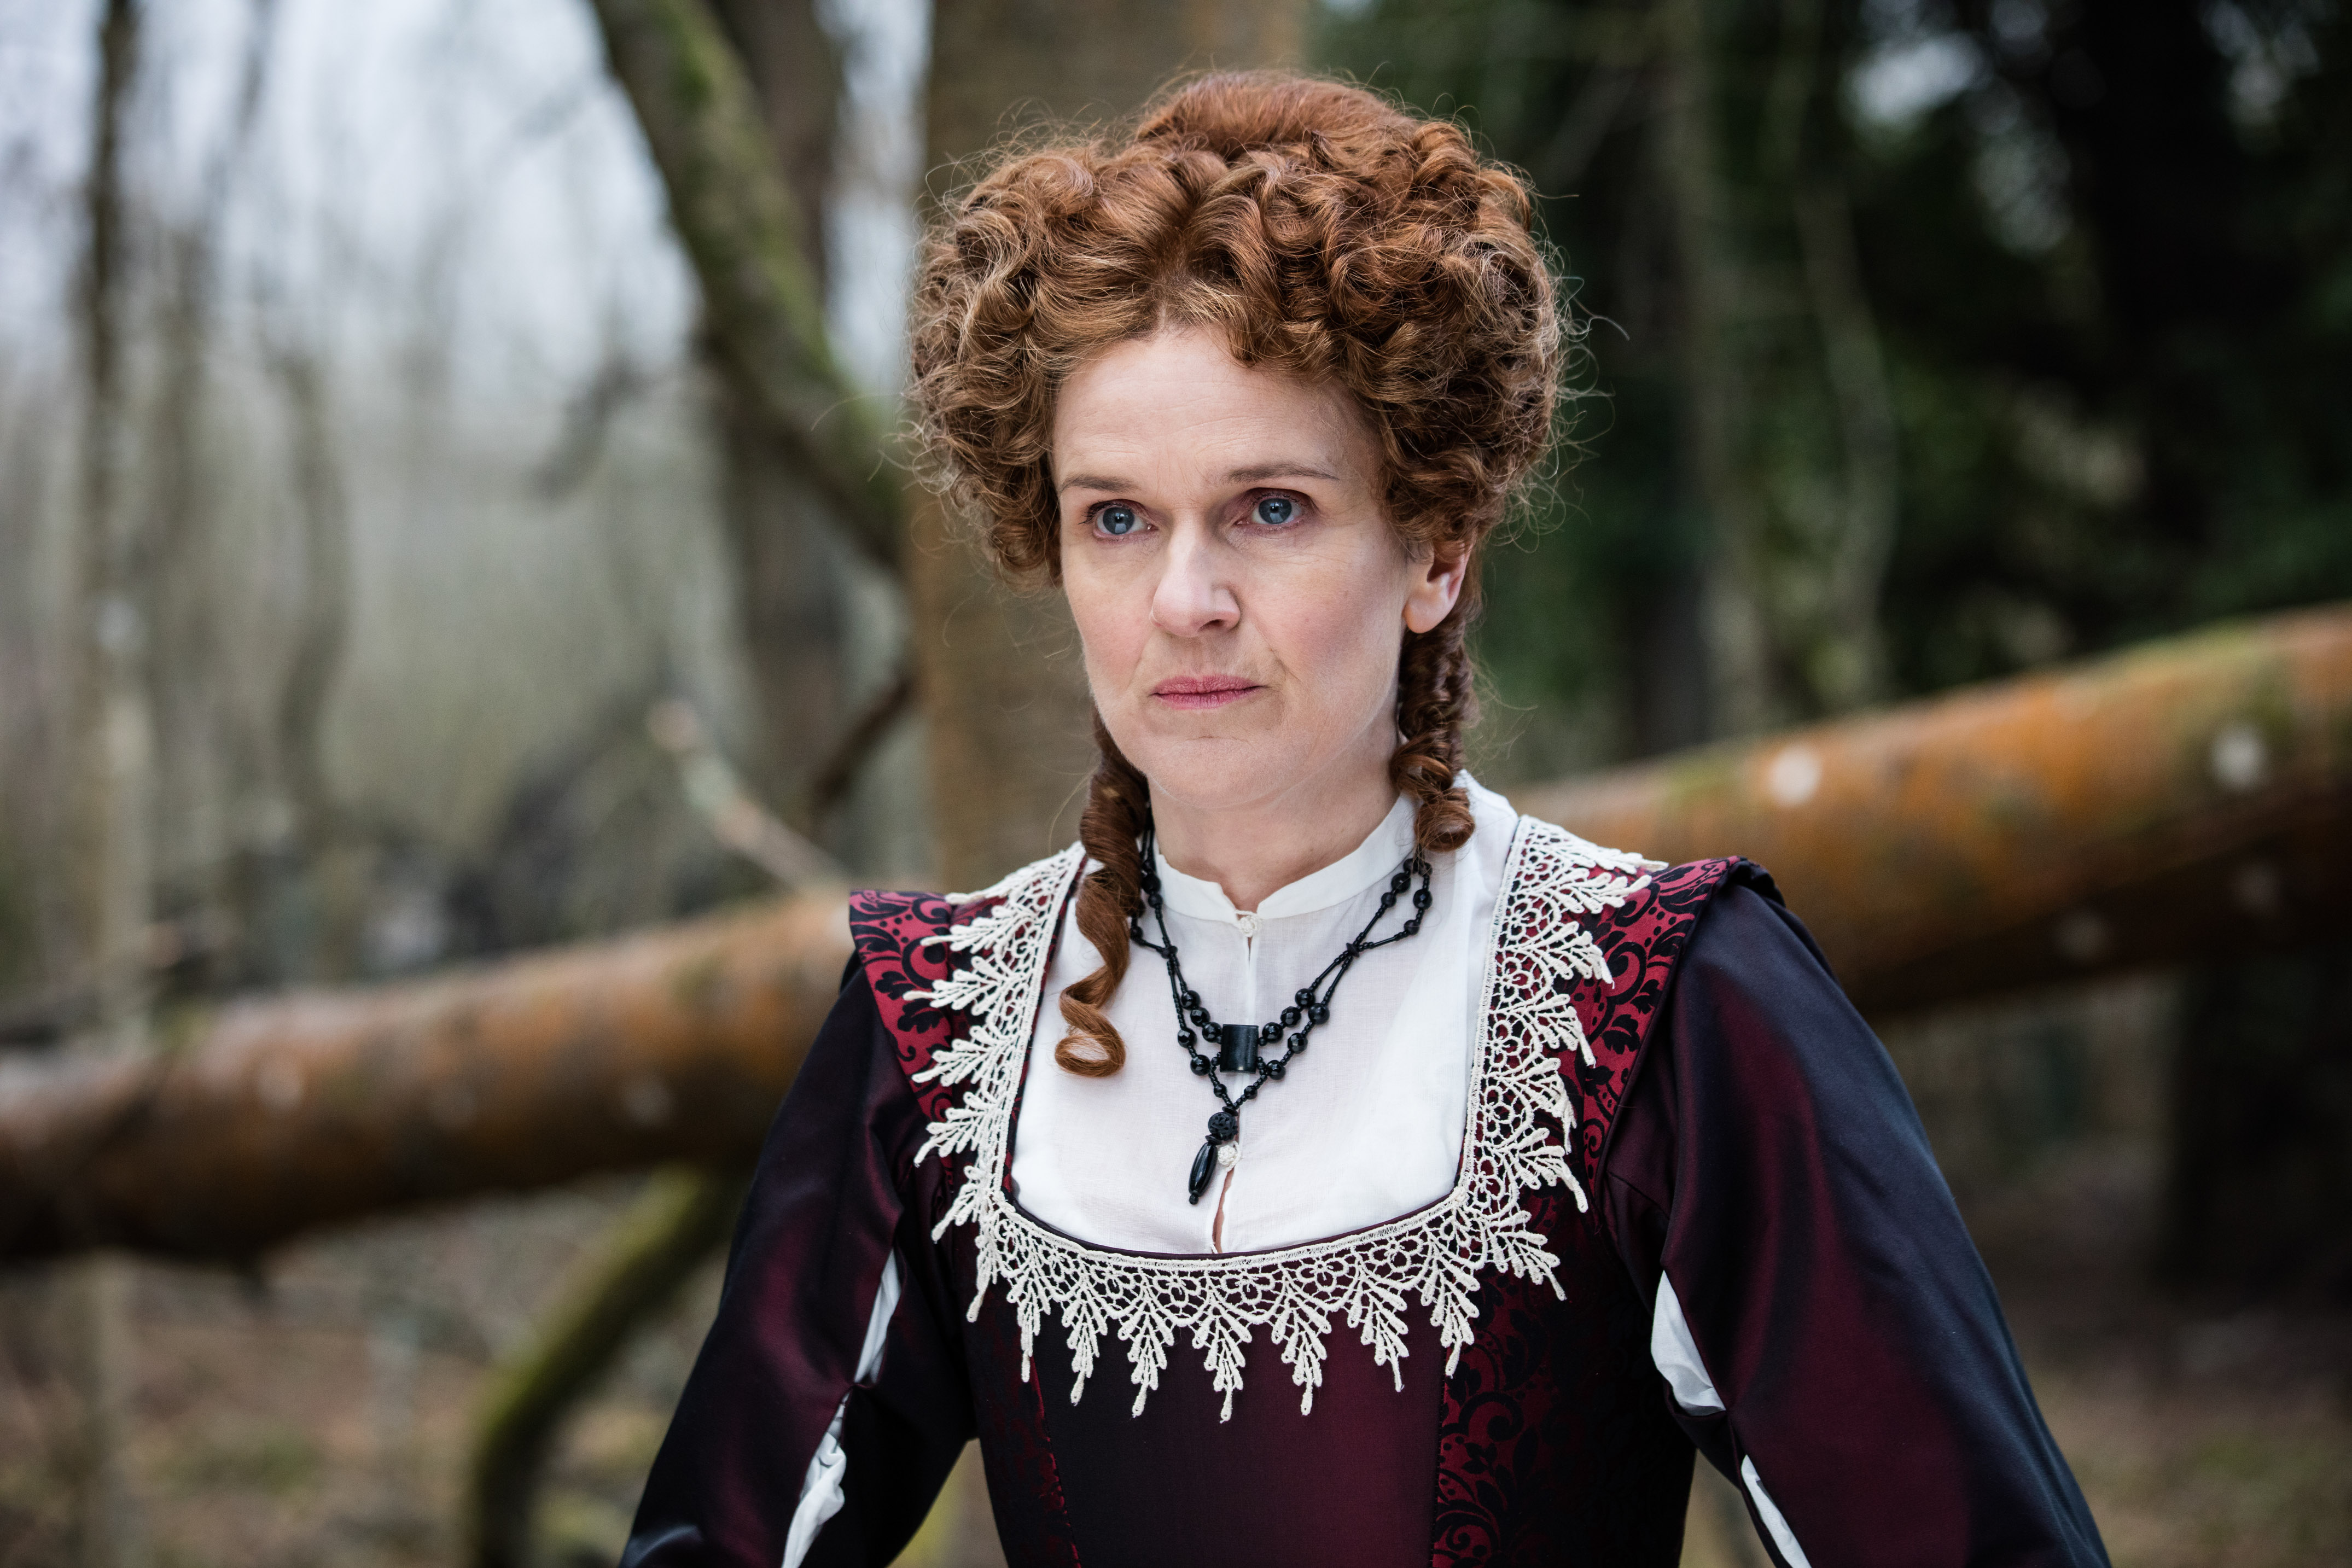 Doctor Who Series 11 - Episode 8 - The Witchfioders - Becka (SIOBHAN FINNERAN)